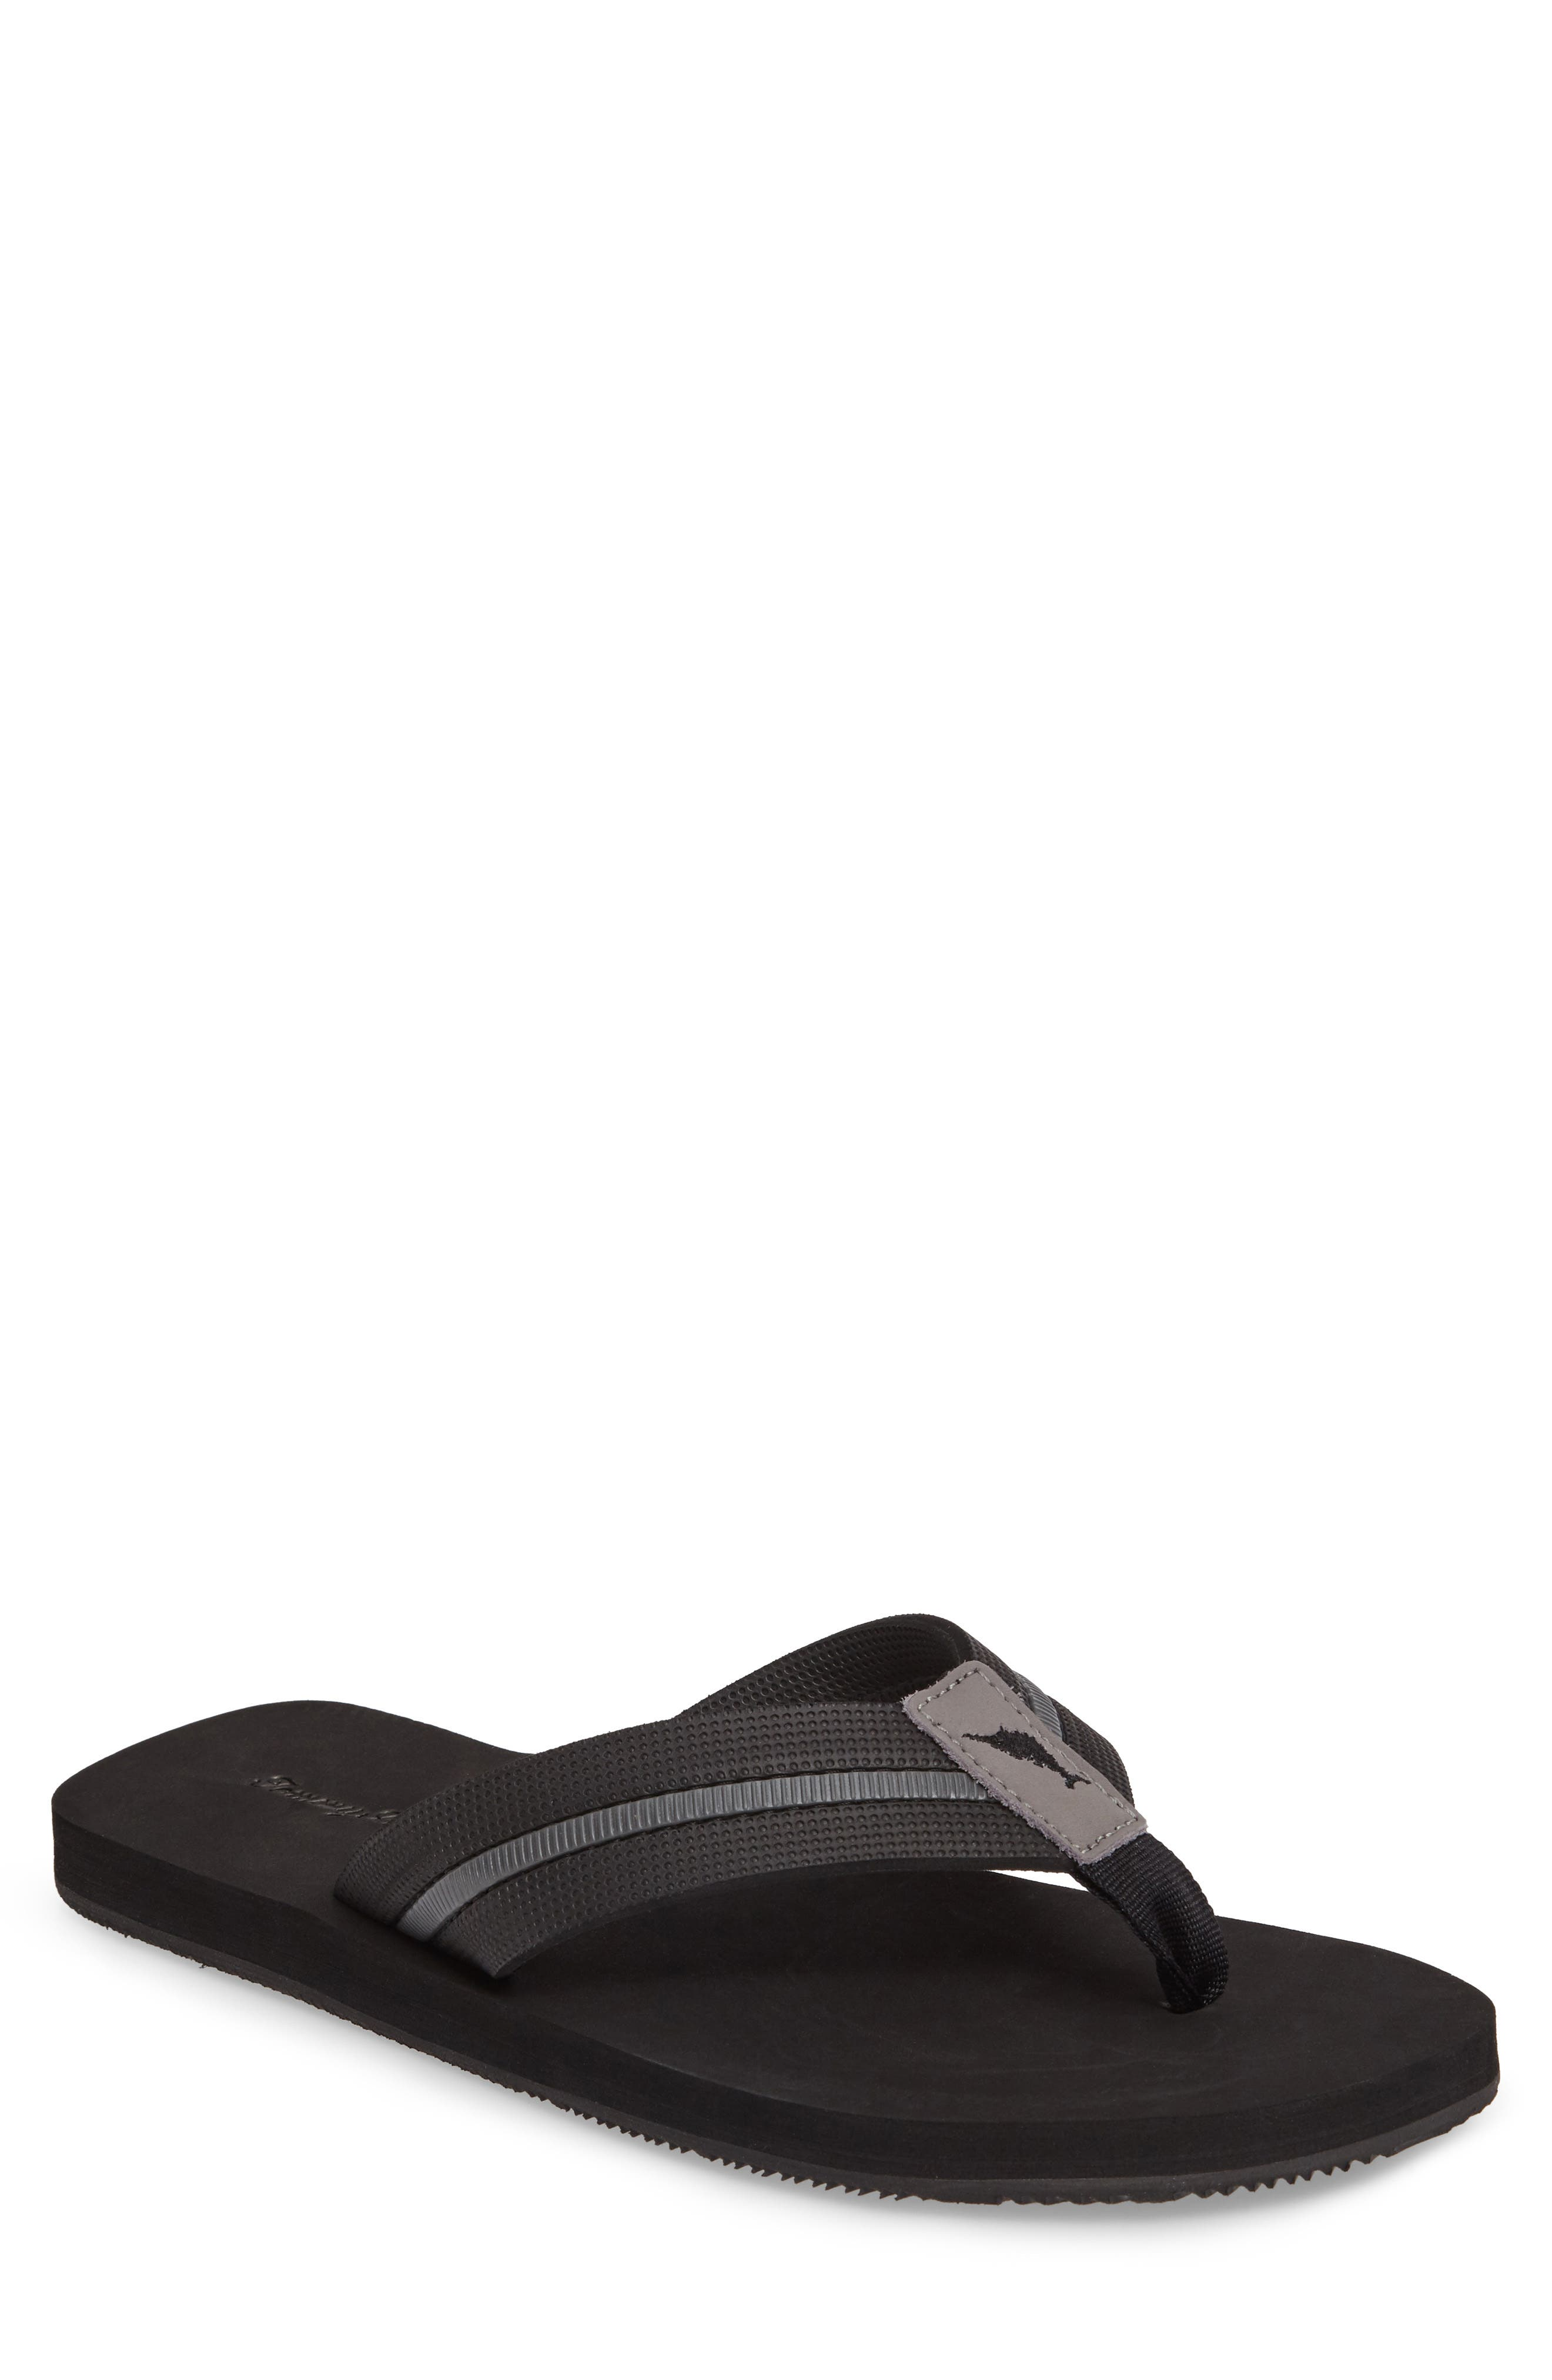 Taheeti Flip Flop,                             Main thumbnail 1, color,                             BLACK